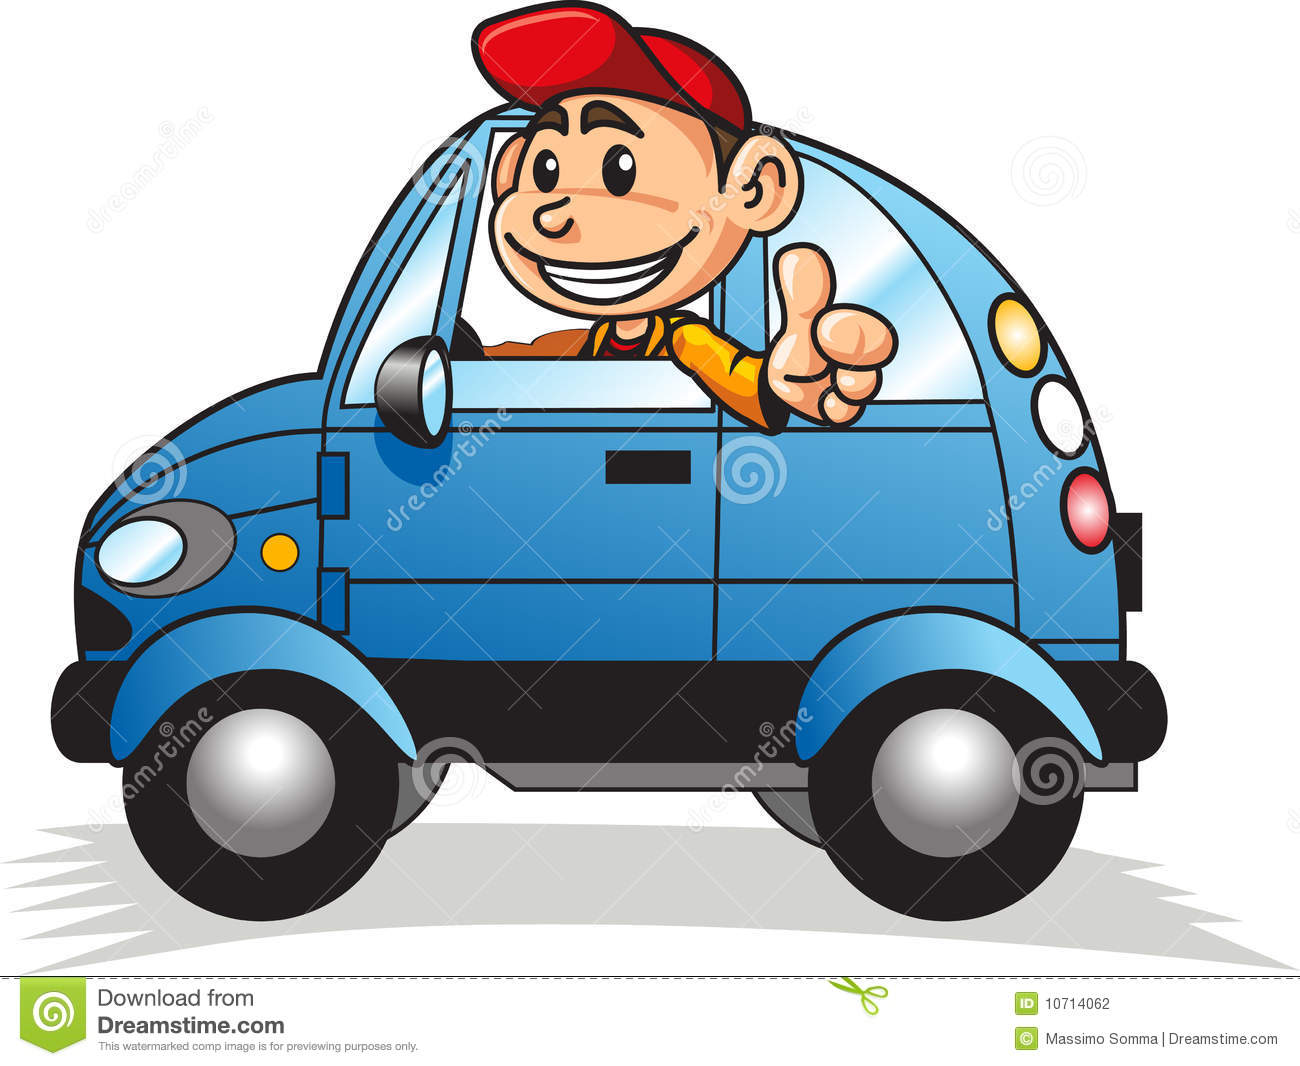 Collection of 14 free Driver clipart automobile bill clipart dollar.